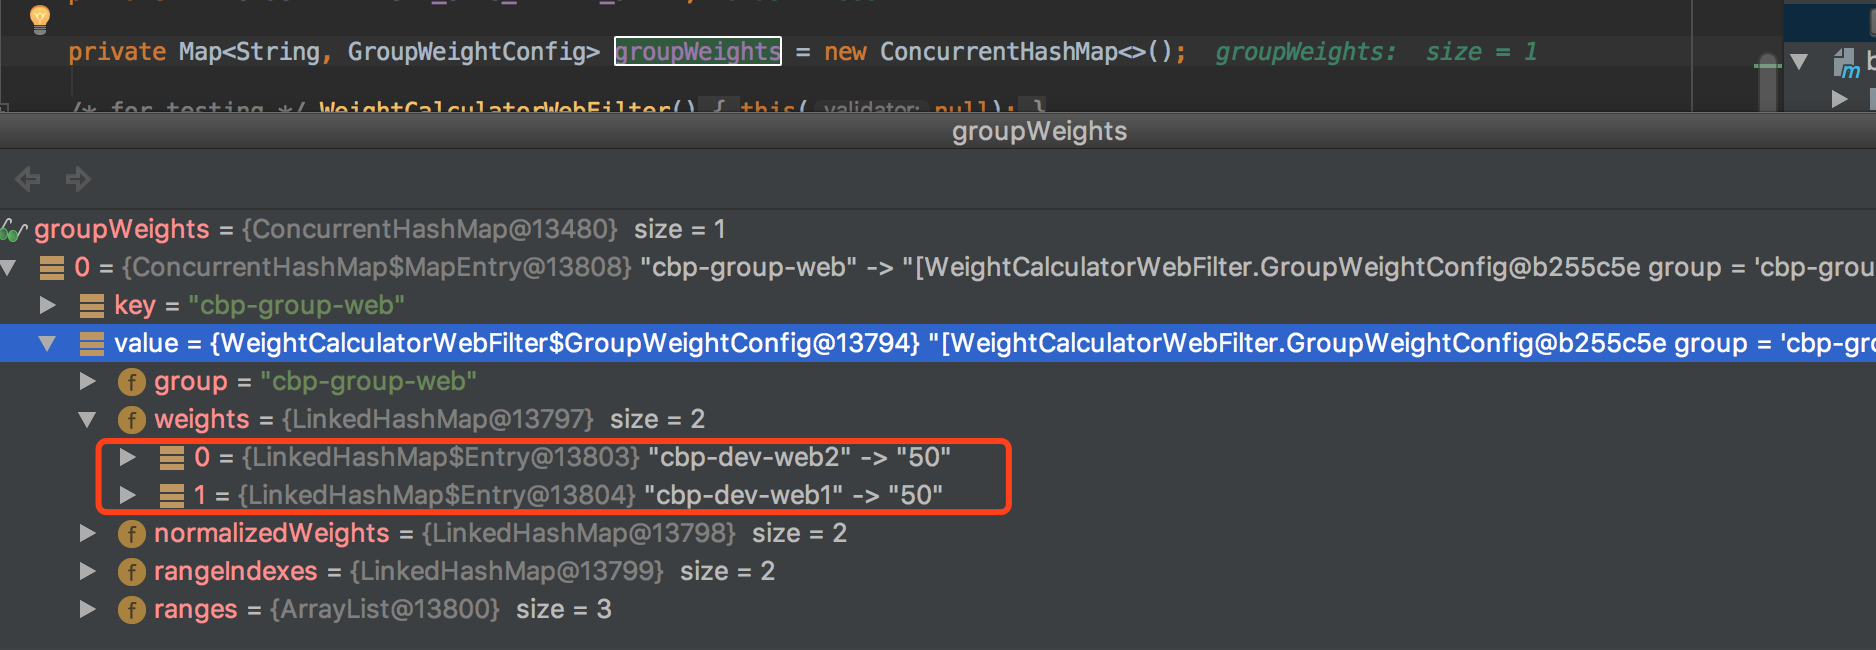 When I dynamically modify the weight routing, it does not work